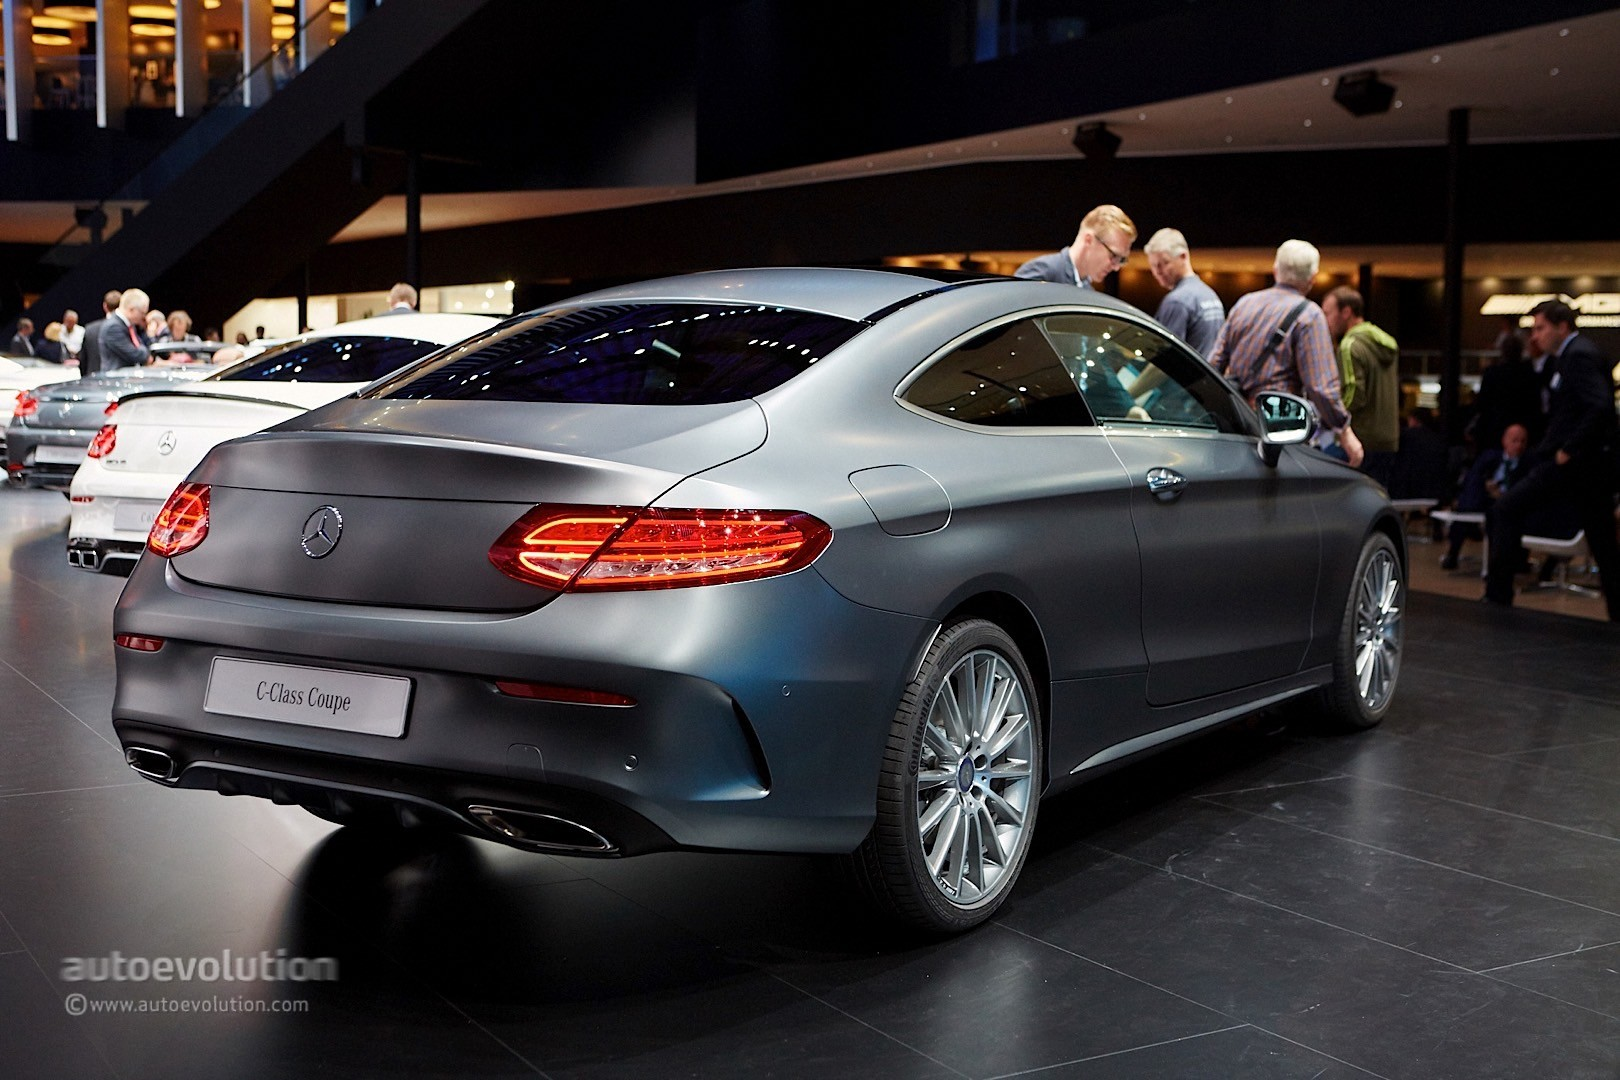 Mercedes Benz C Class Coupe And C63 Coupe Bring Sloped